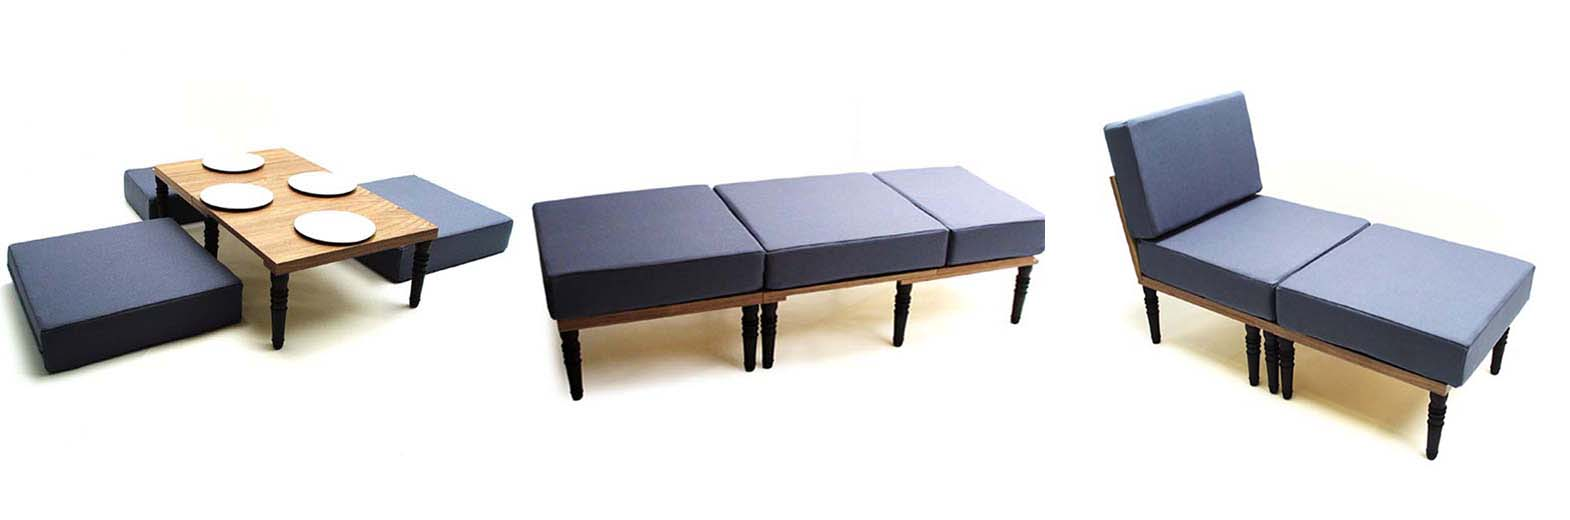 PRODUCT DETAILS  sc 1 st  Duffy London & Sofa Bed and Chair with Foot Stool Bed Bench Table - Duffy London islam-shia.org